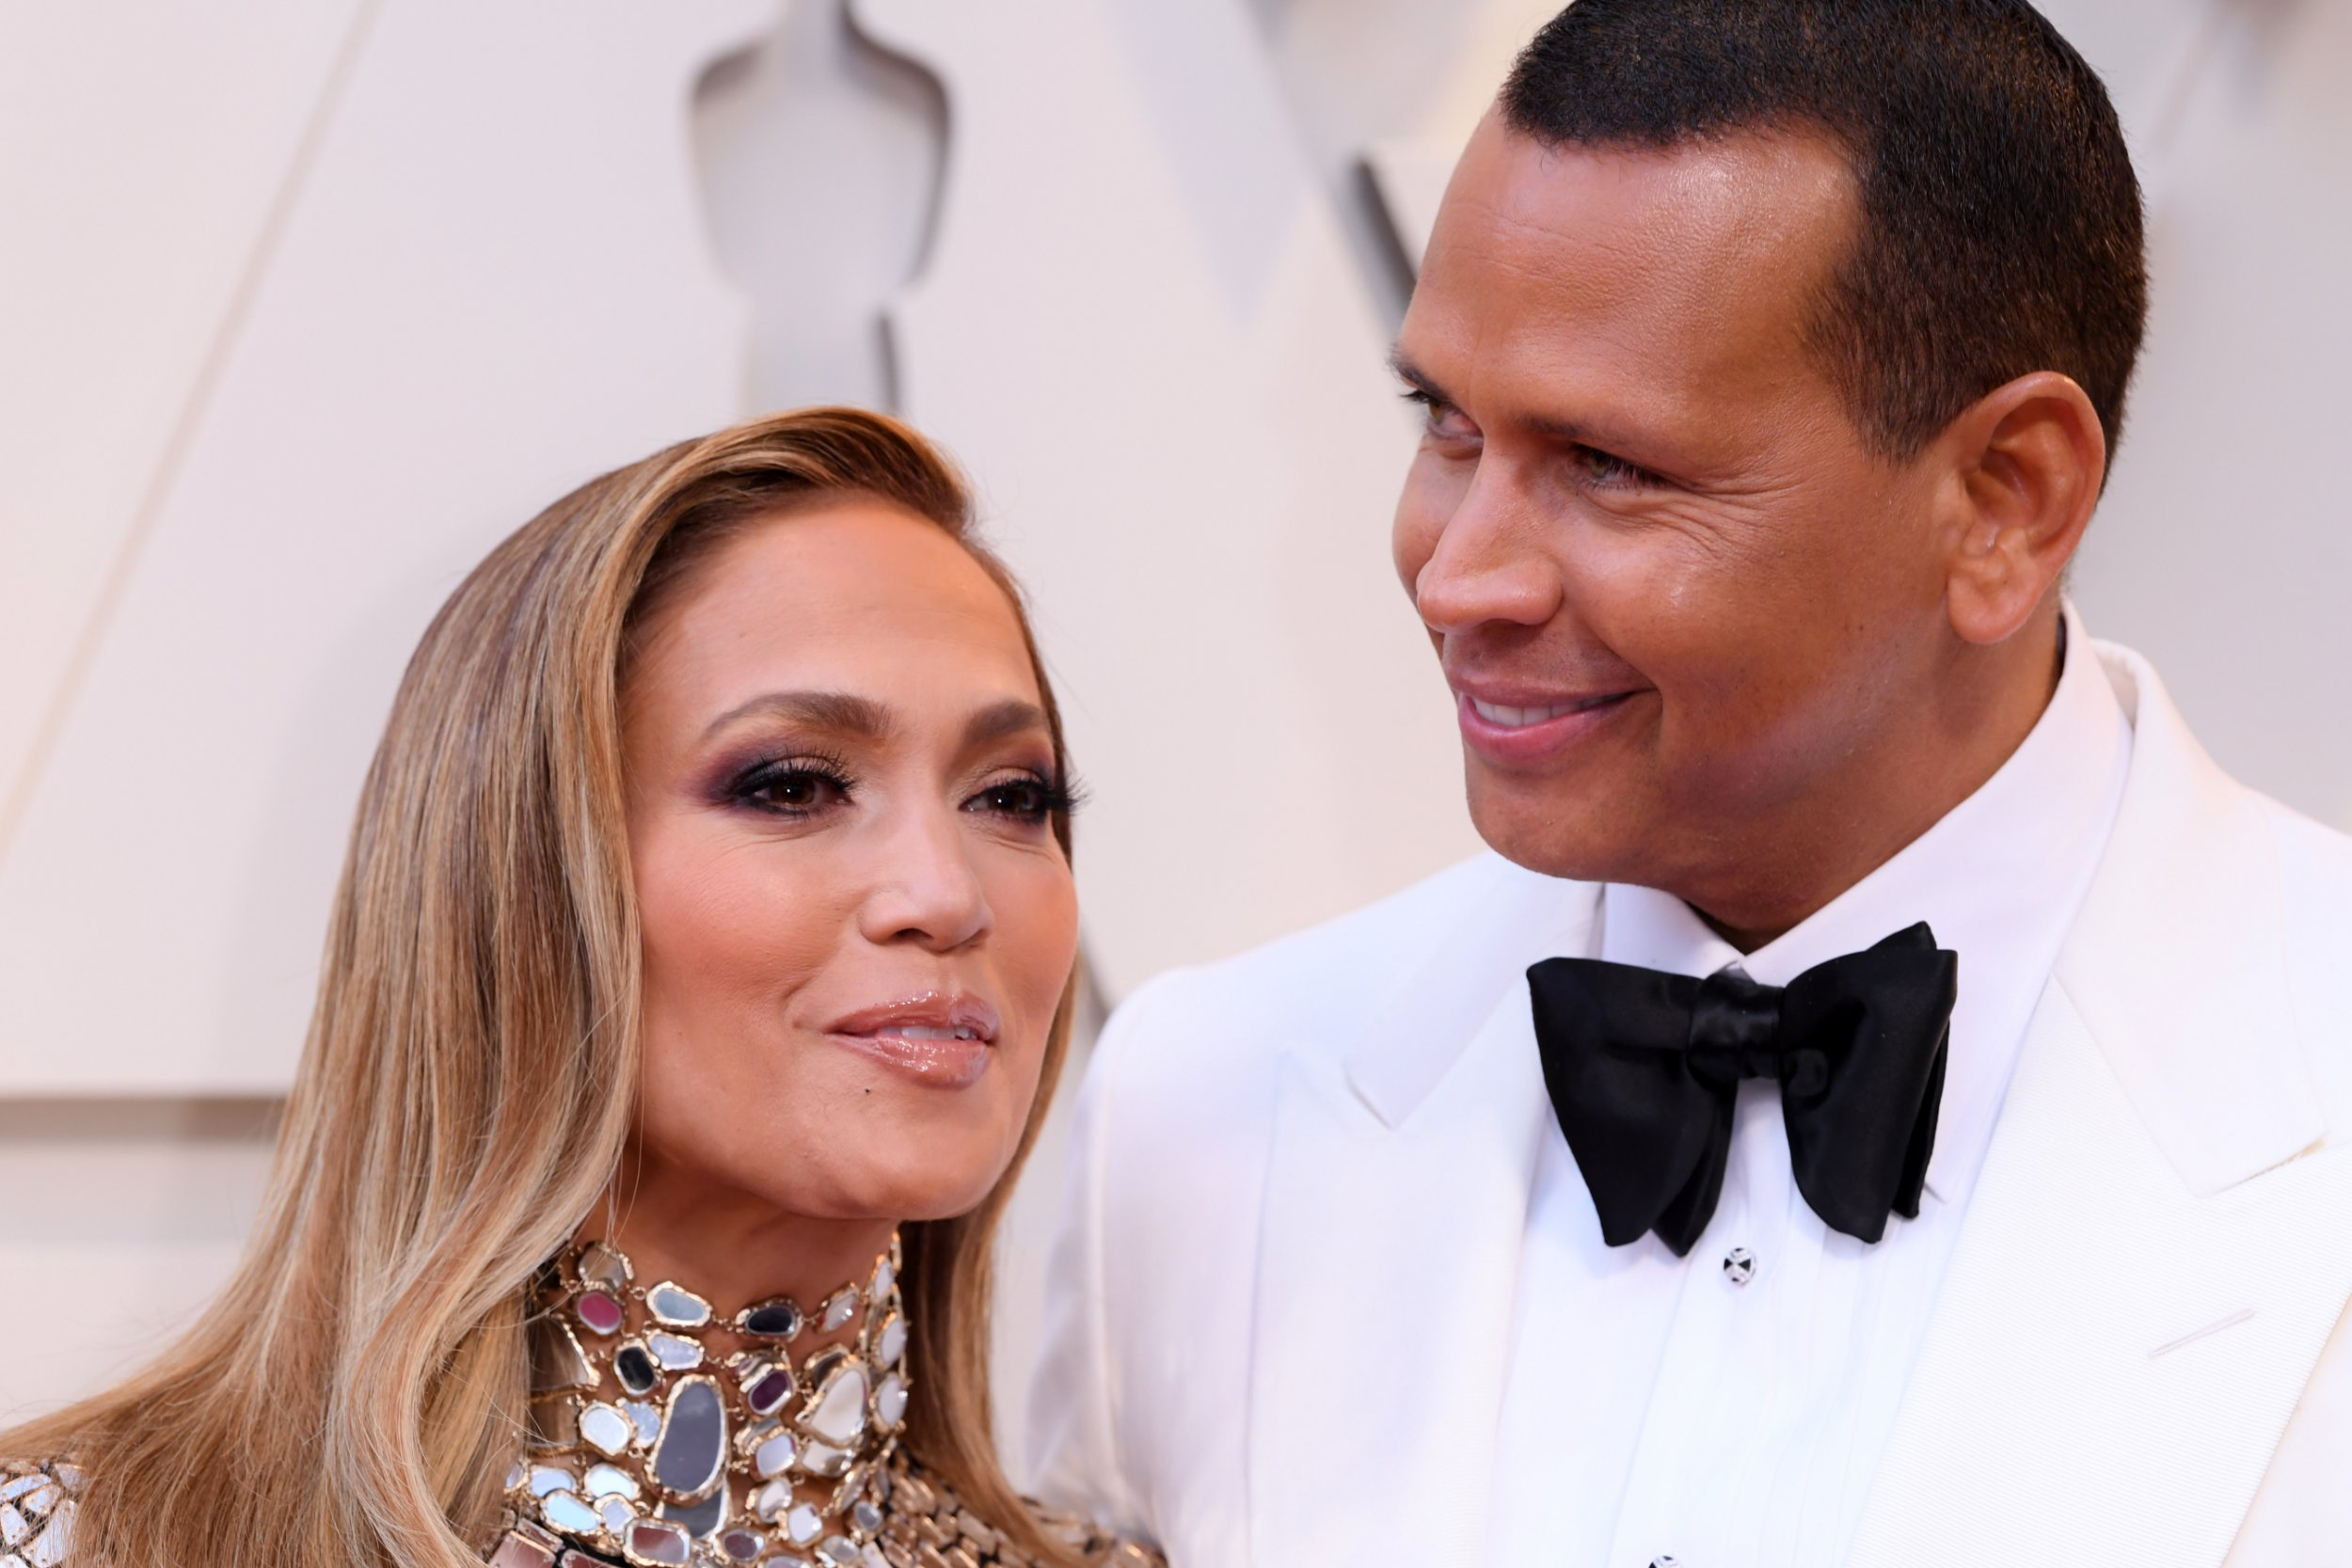 Mandatory Credit: Photo by David Fisher/REX/Shutterstock (10112734pj) Jennifer Lopez and Alex Rodriguez 91st Annual Academy Awards, Arrivals, Los Angeles, USA - 24 Feb 2019